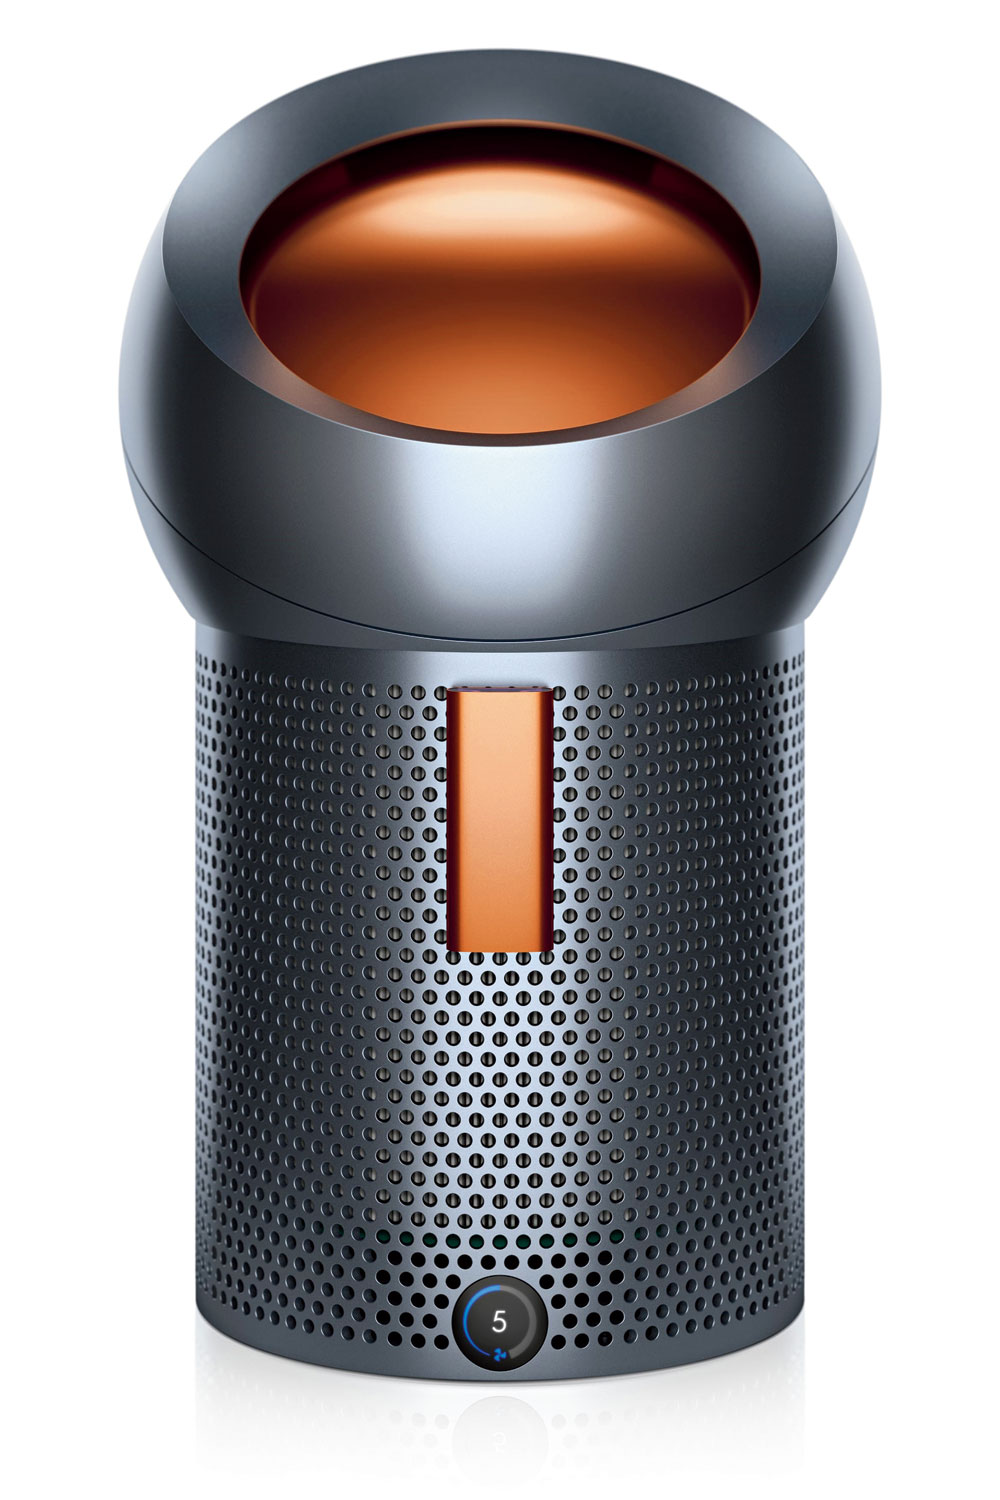 The Dyson Pure Cool Me